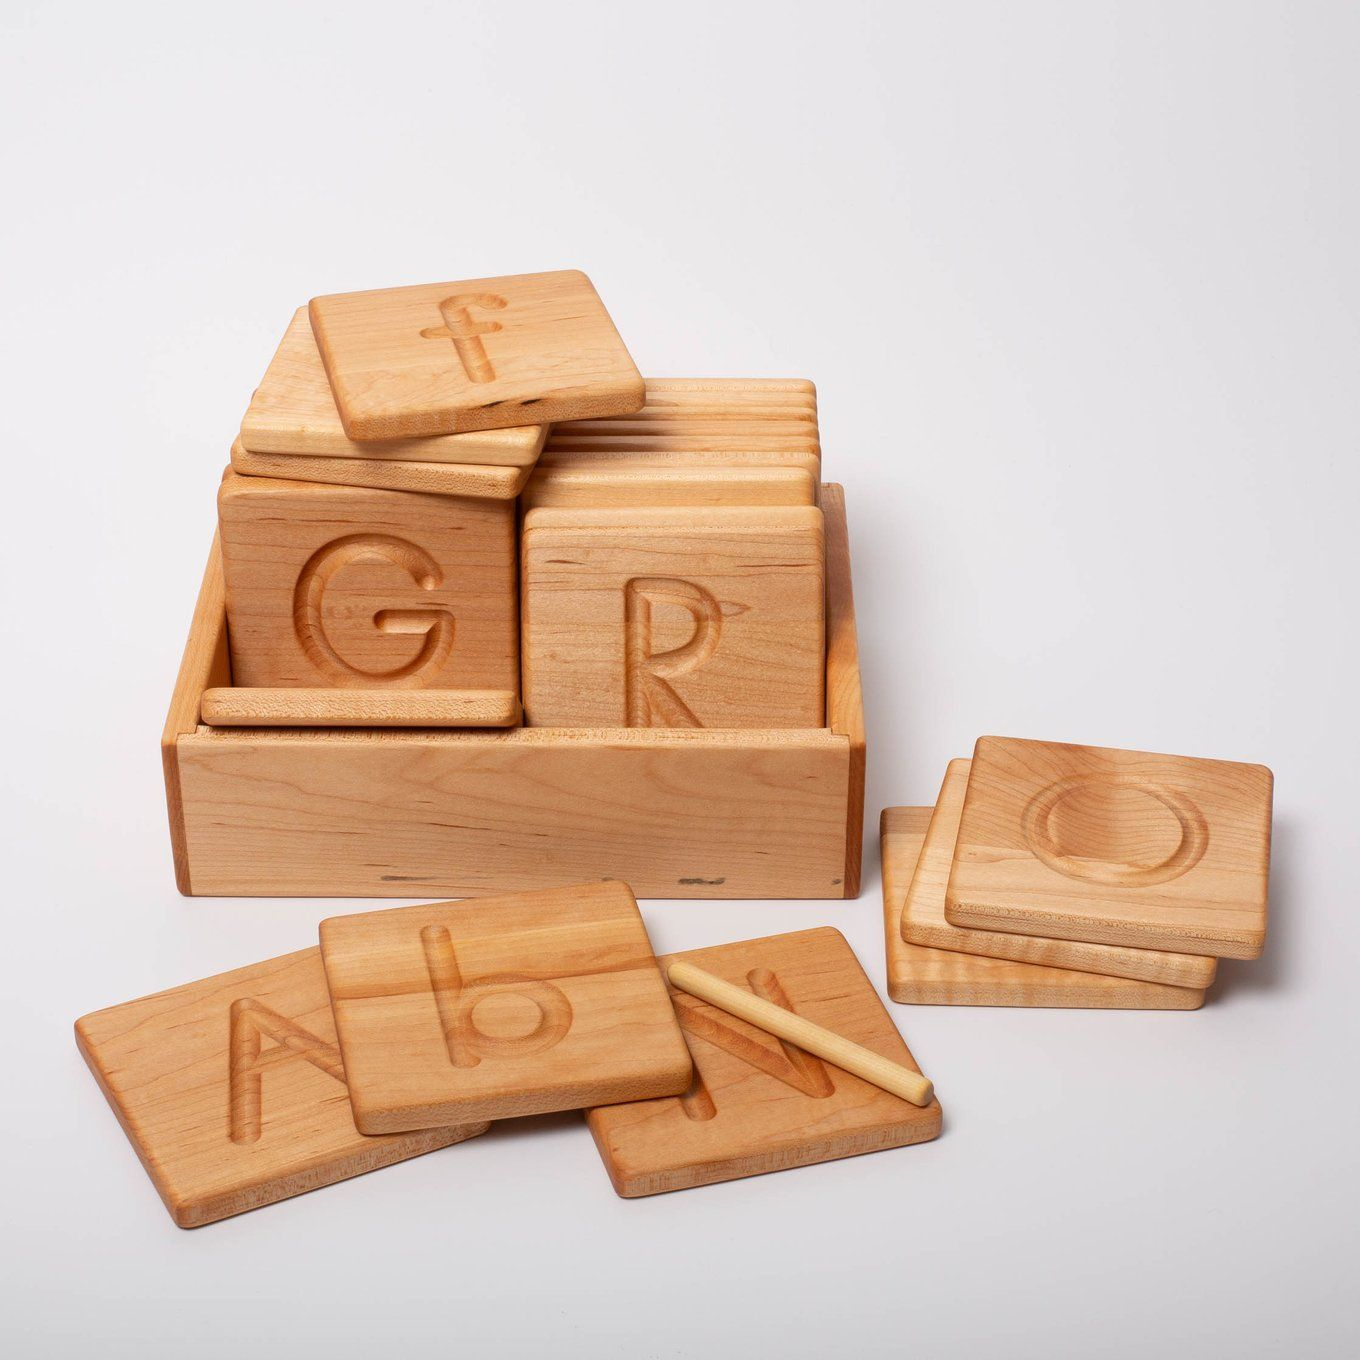 Reversible Wooden Abc Cards | Printed | Abc Cards, Wooden regarding Wooden Tracing Letters